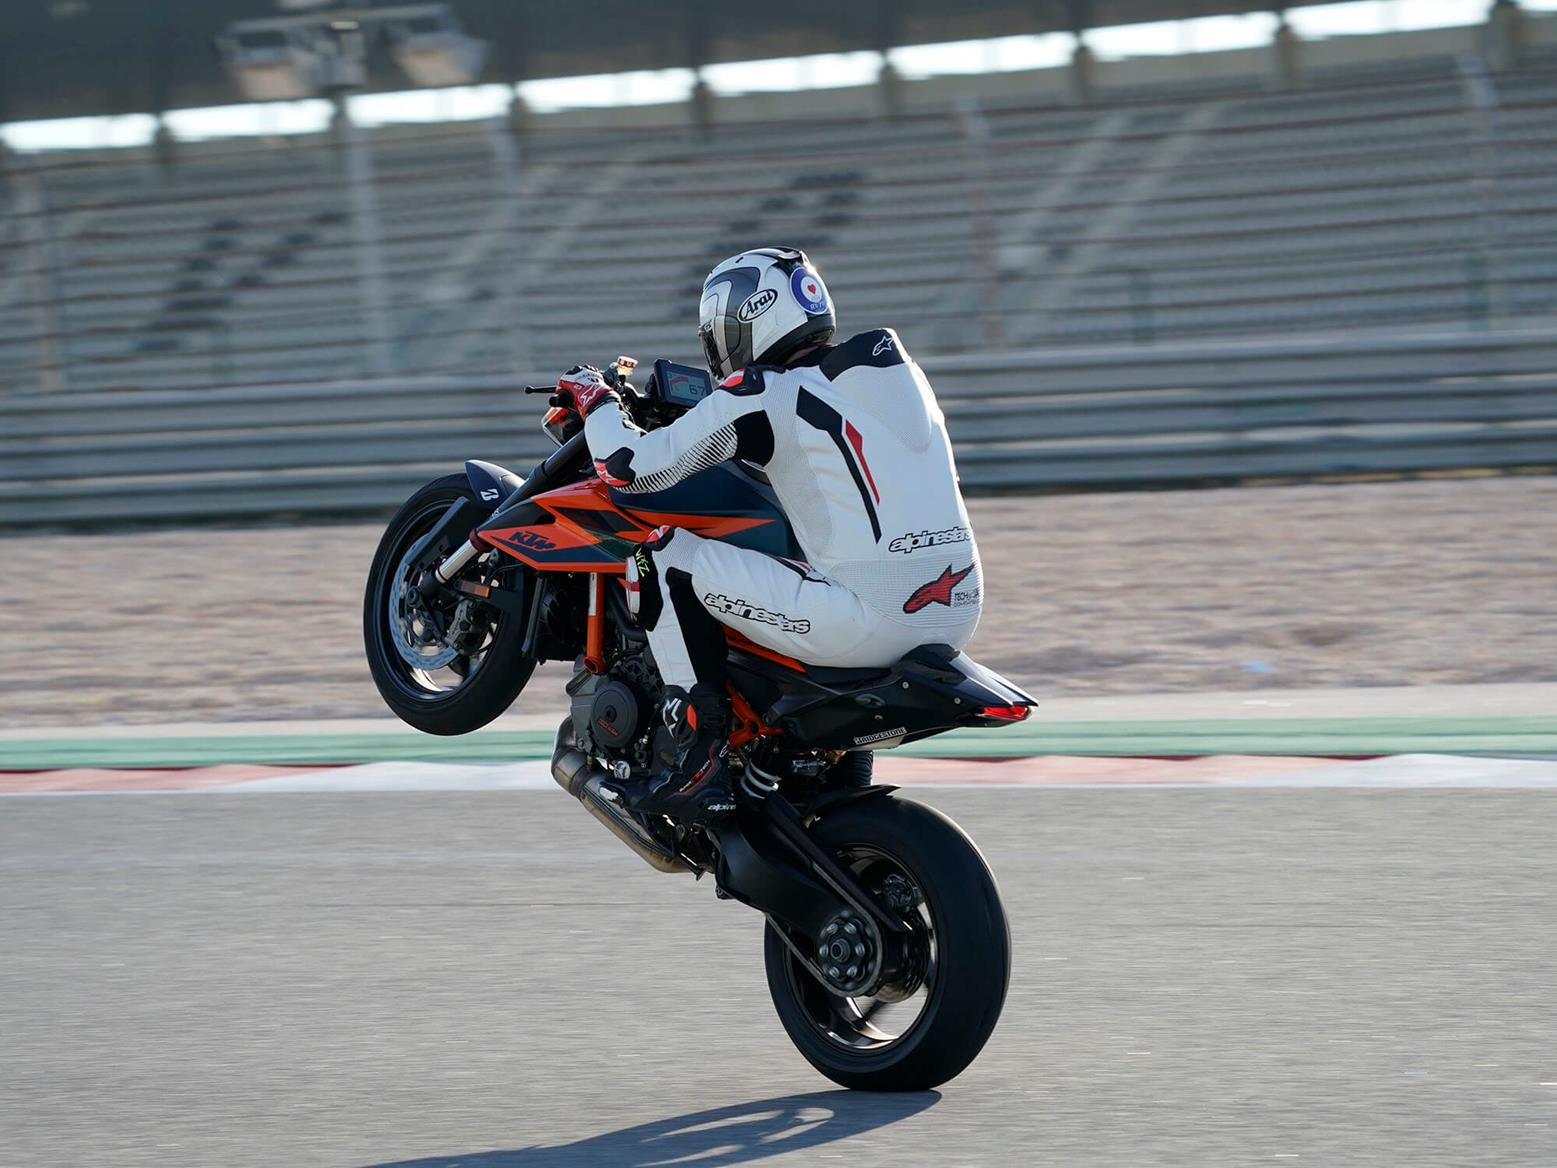 KTM 1290 Super Duke R rear wheelie